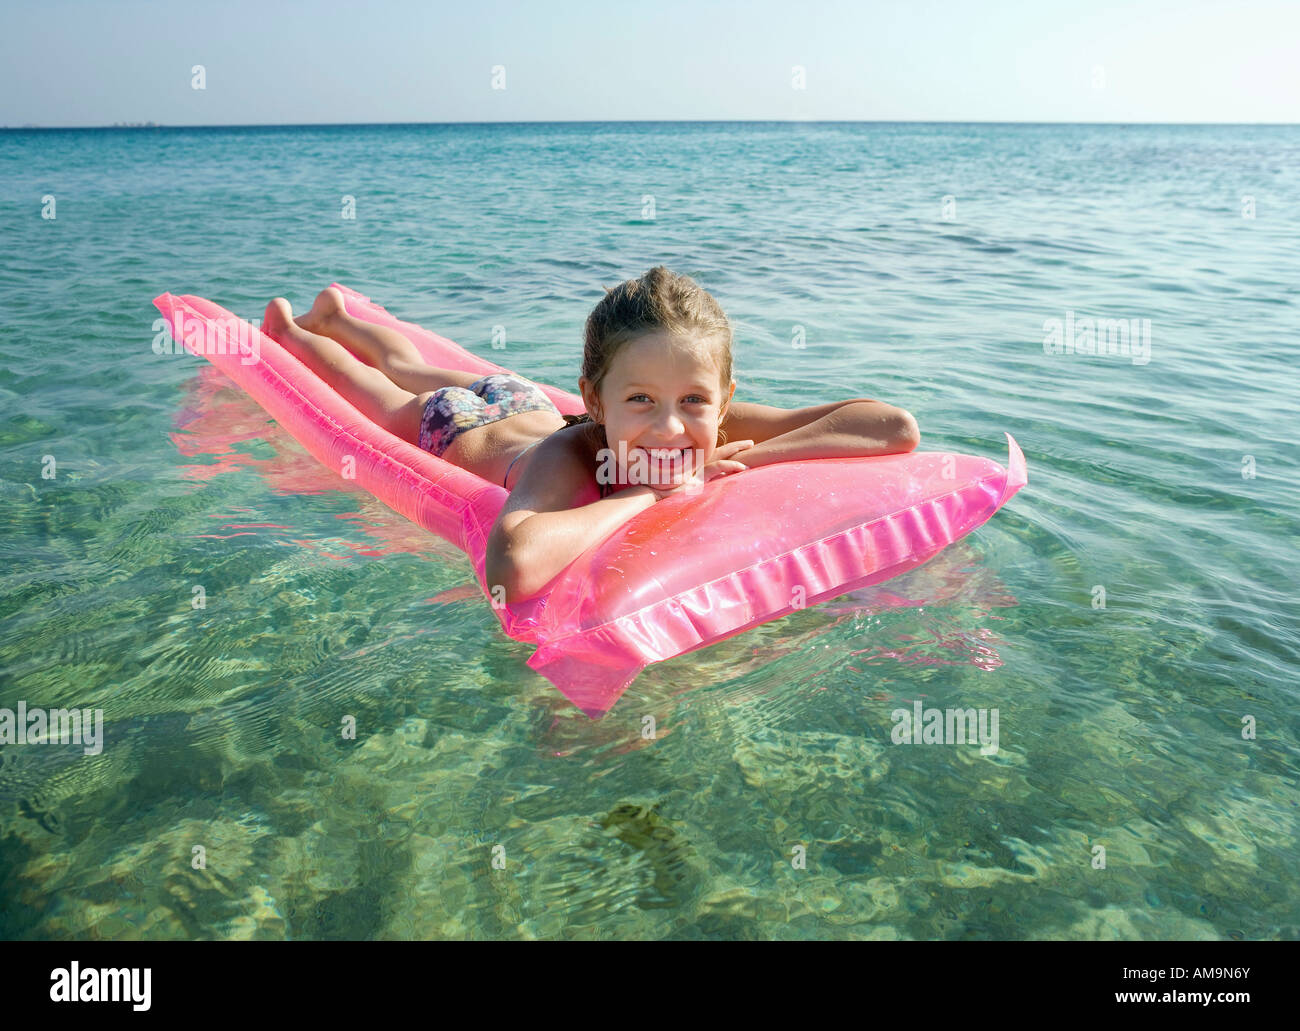 Young girl on an inflatable raft in the water smiling. Stock Photo